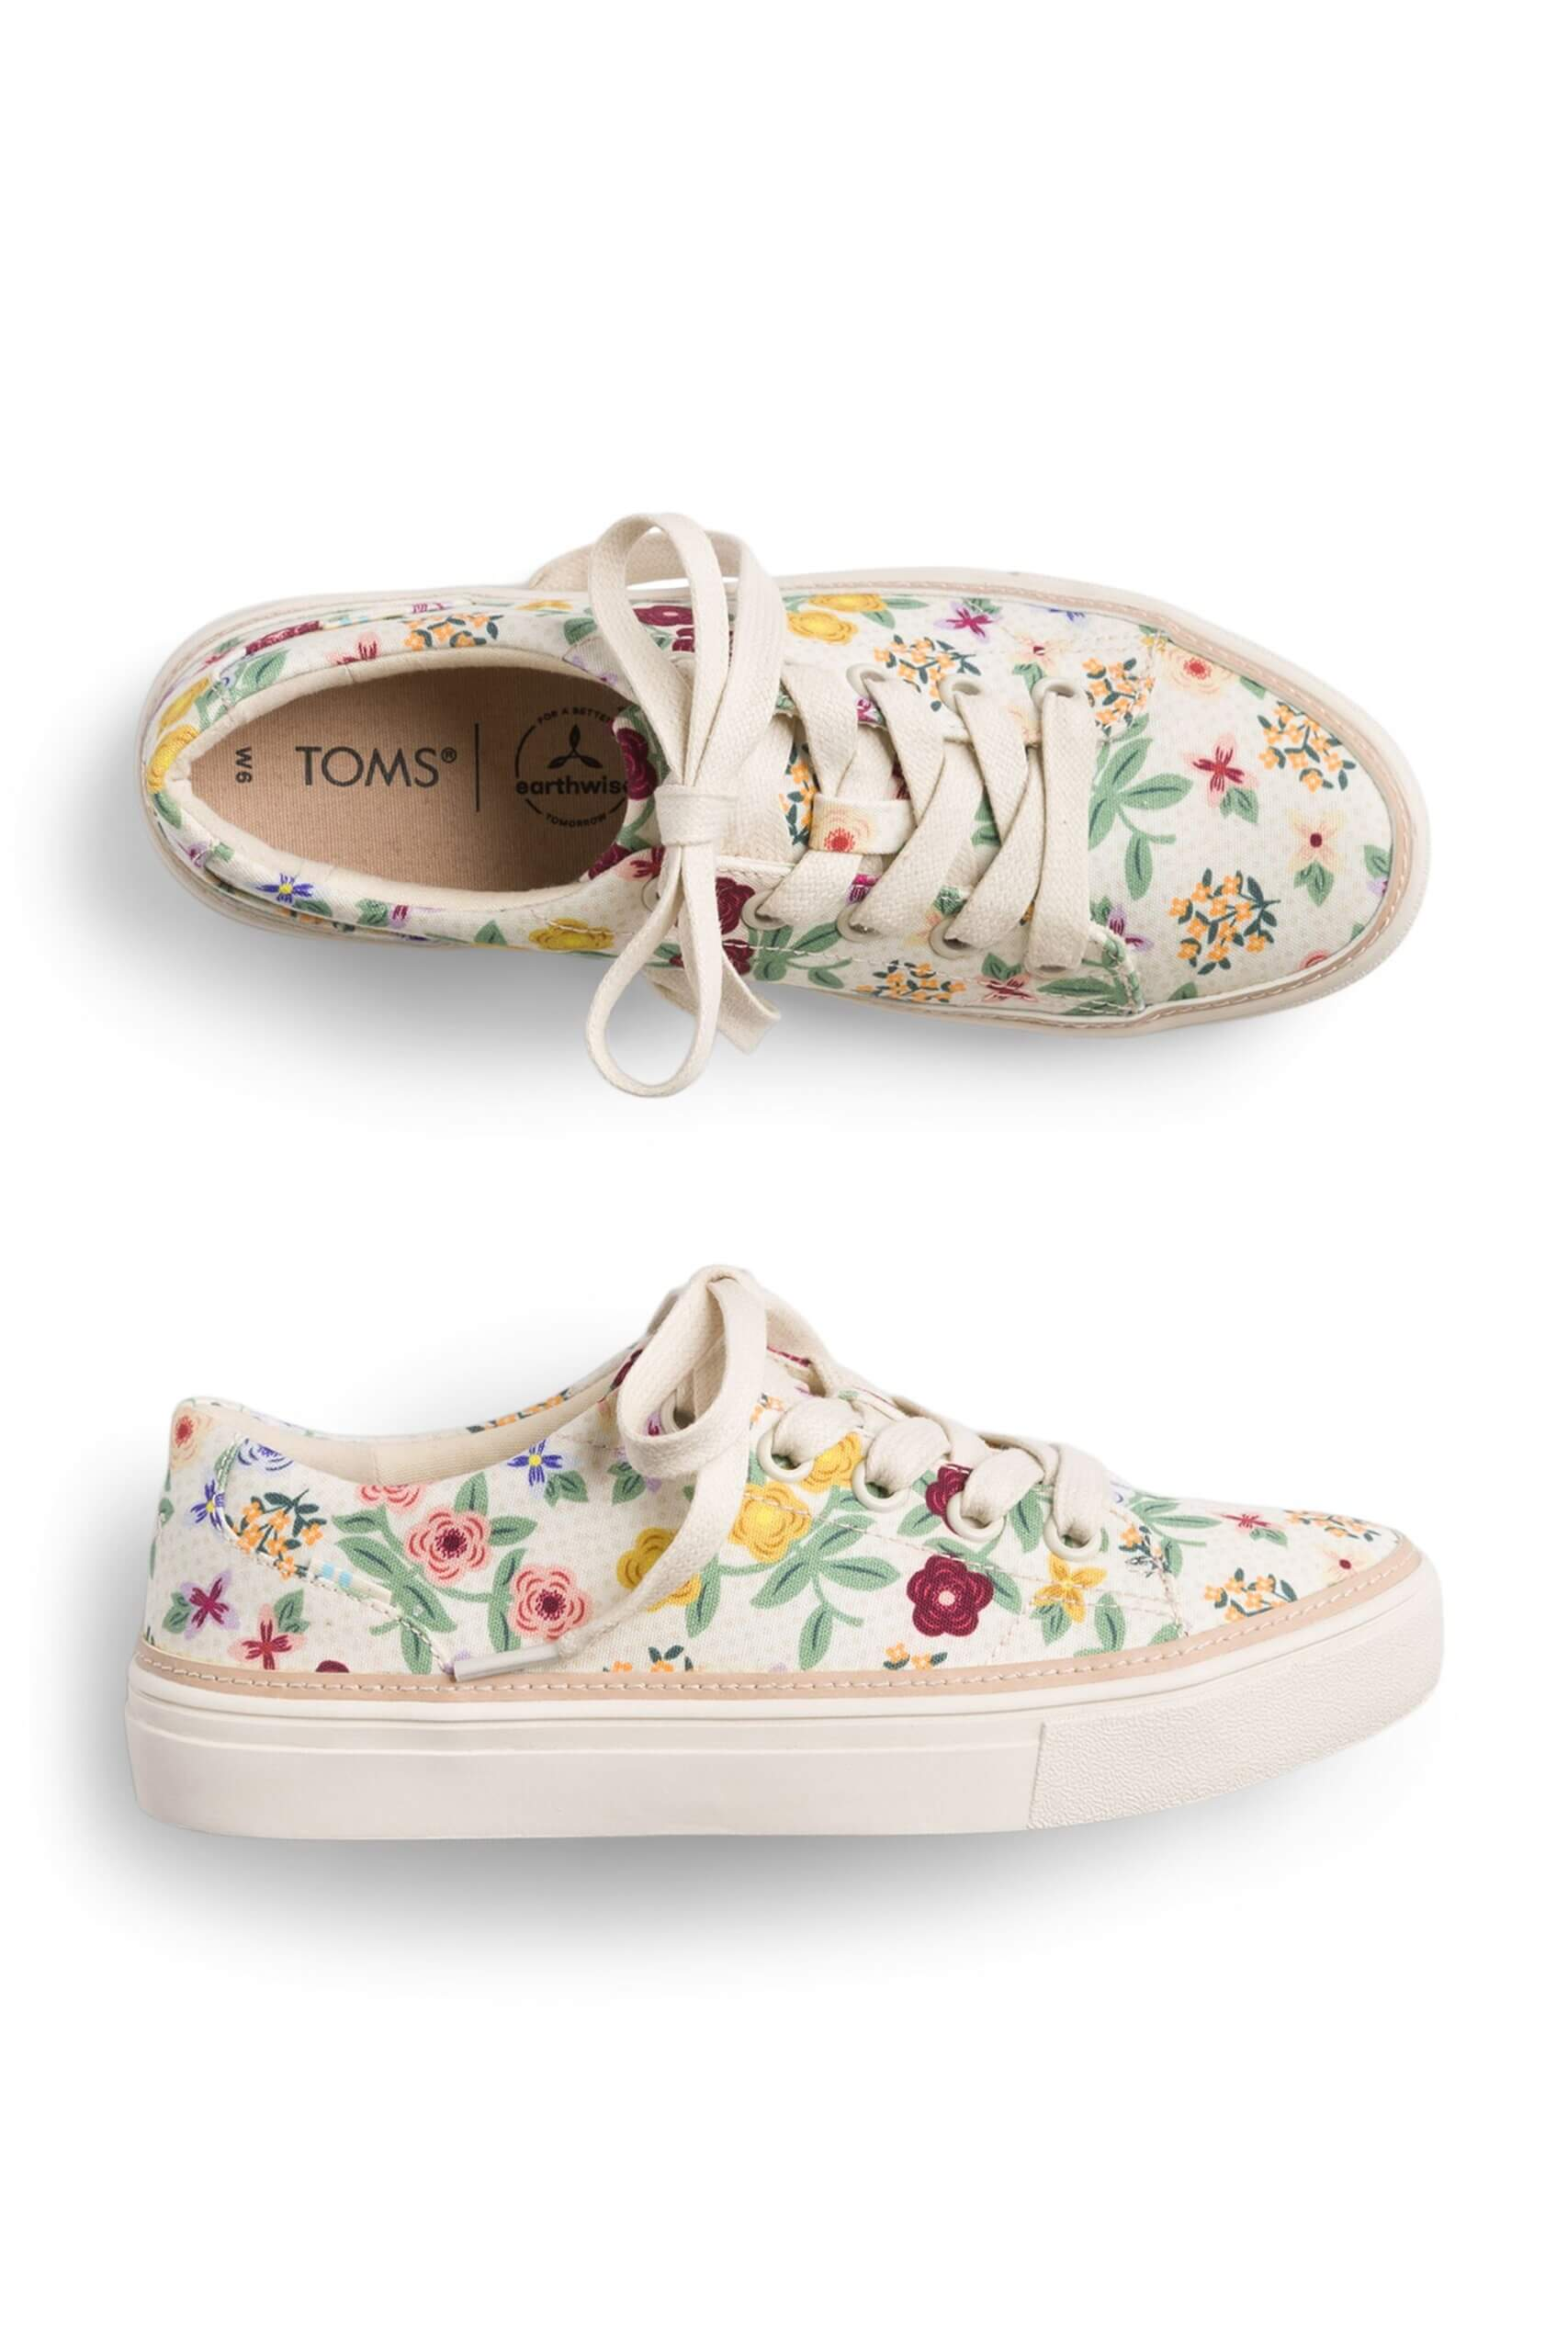 Stitch Fix Women's white sneakers with floral print.